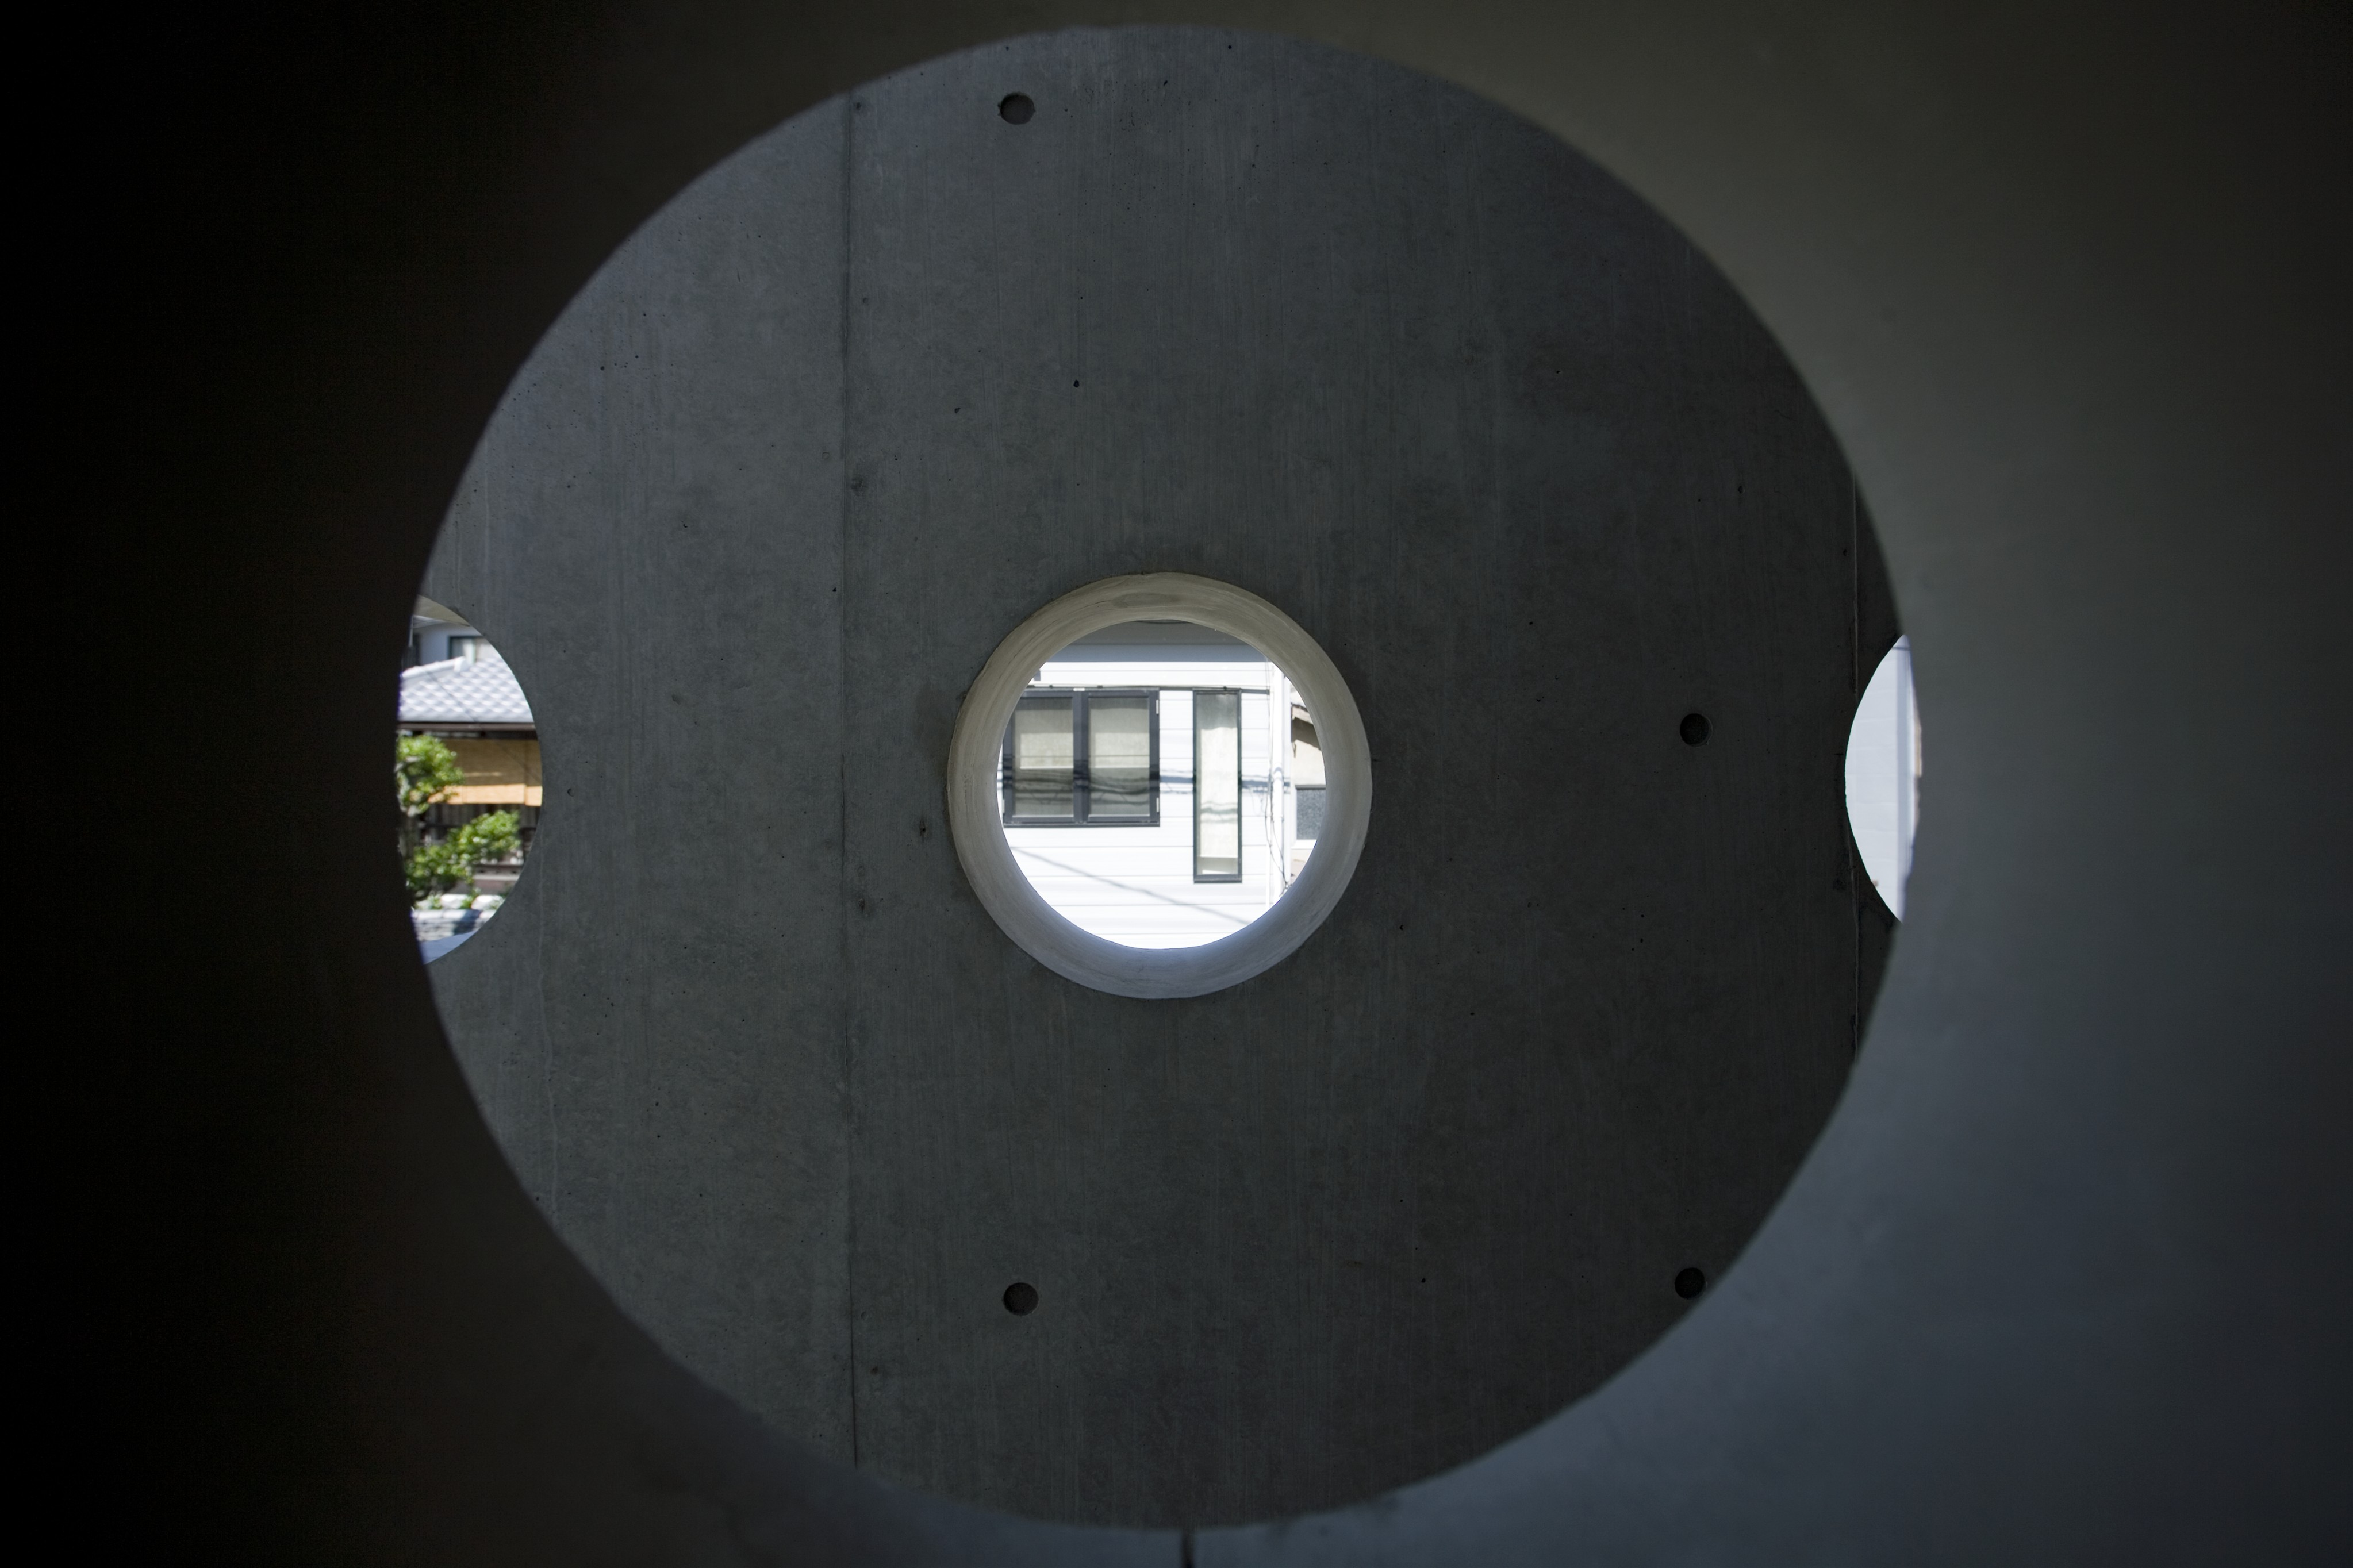 Here we have a view through an interior port hole to one of the outer, protective wall holes.